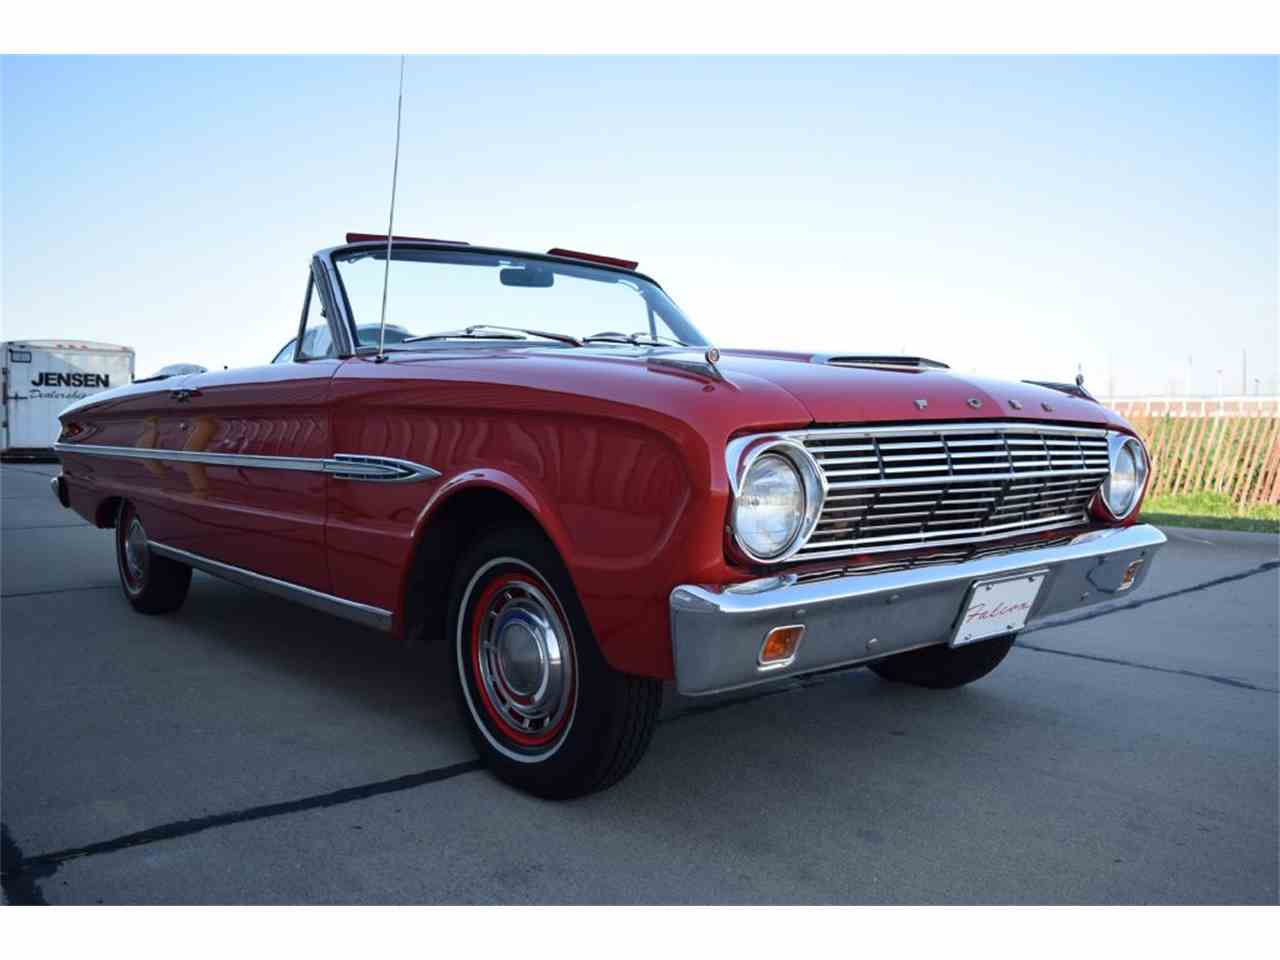 Large Picture of Classic 1963 Ford Falcon Futura located in Sioux City Iowa - $24,900.00 Offered by Jensen Dealerships - LUN9